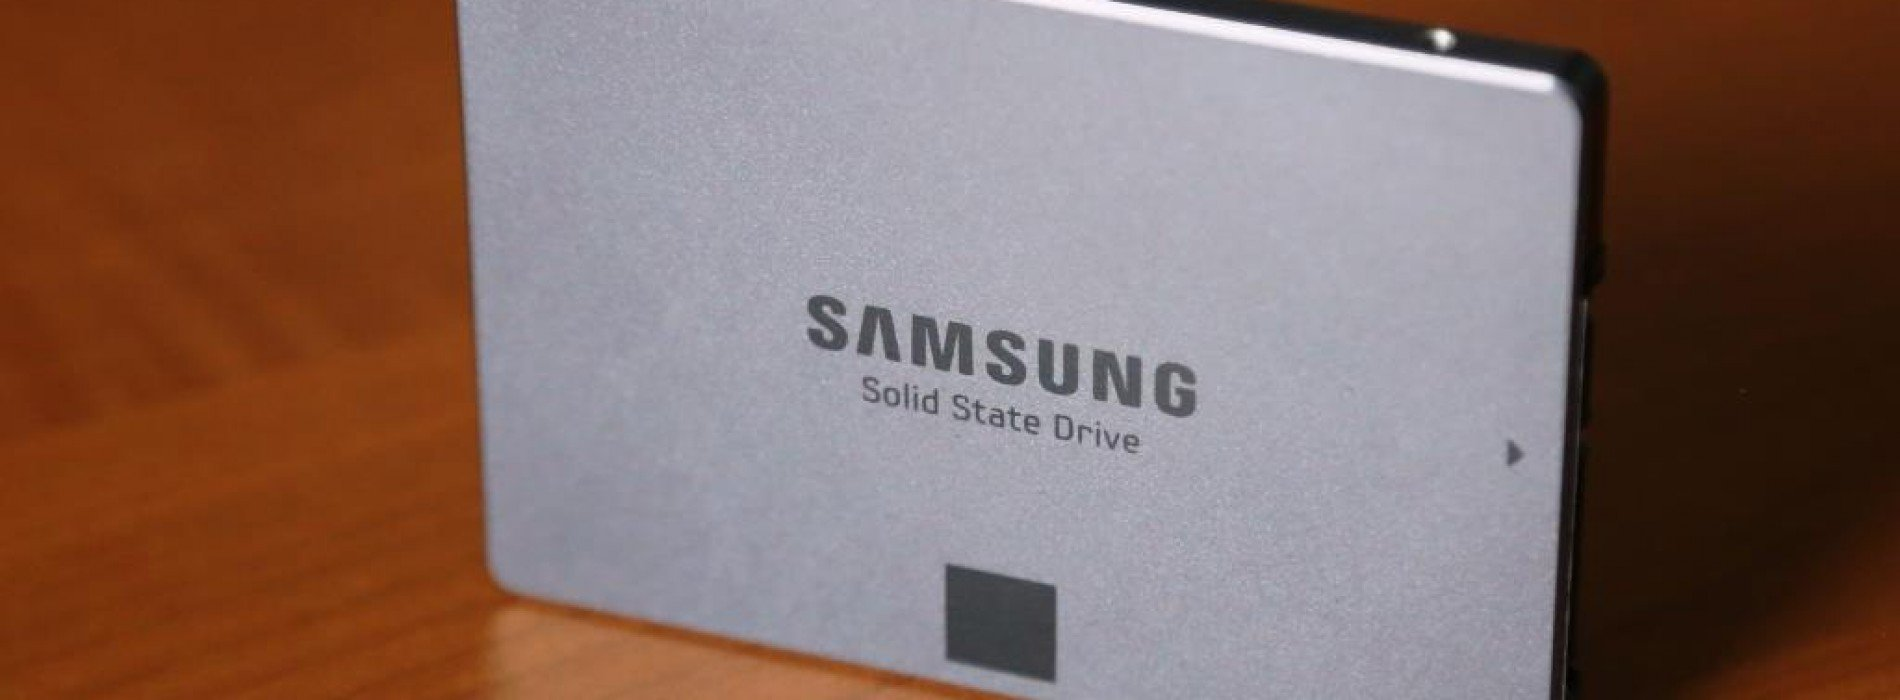 Samsung pushes throttle with EVO-series SSD and Facebook game [Review]